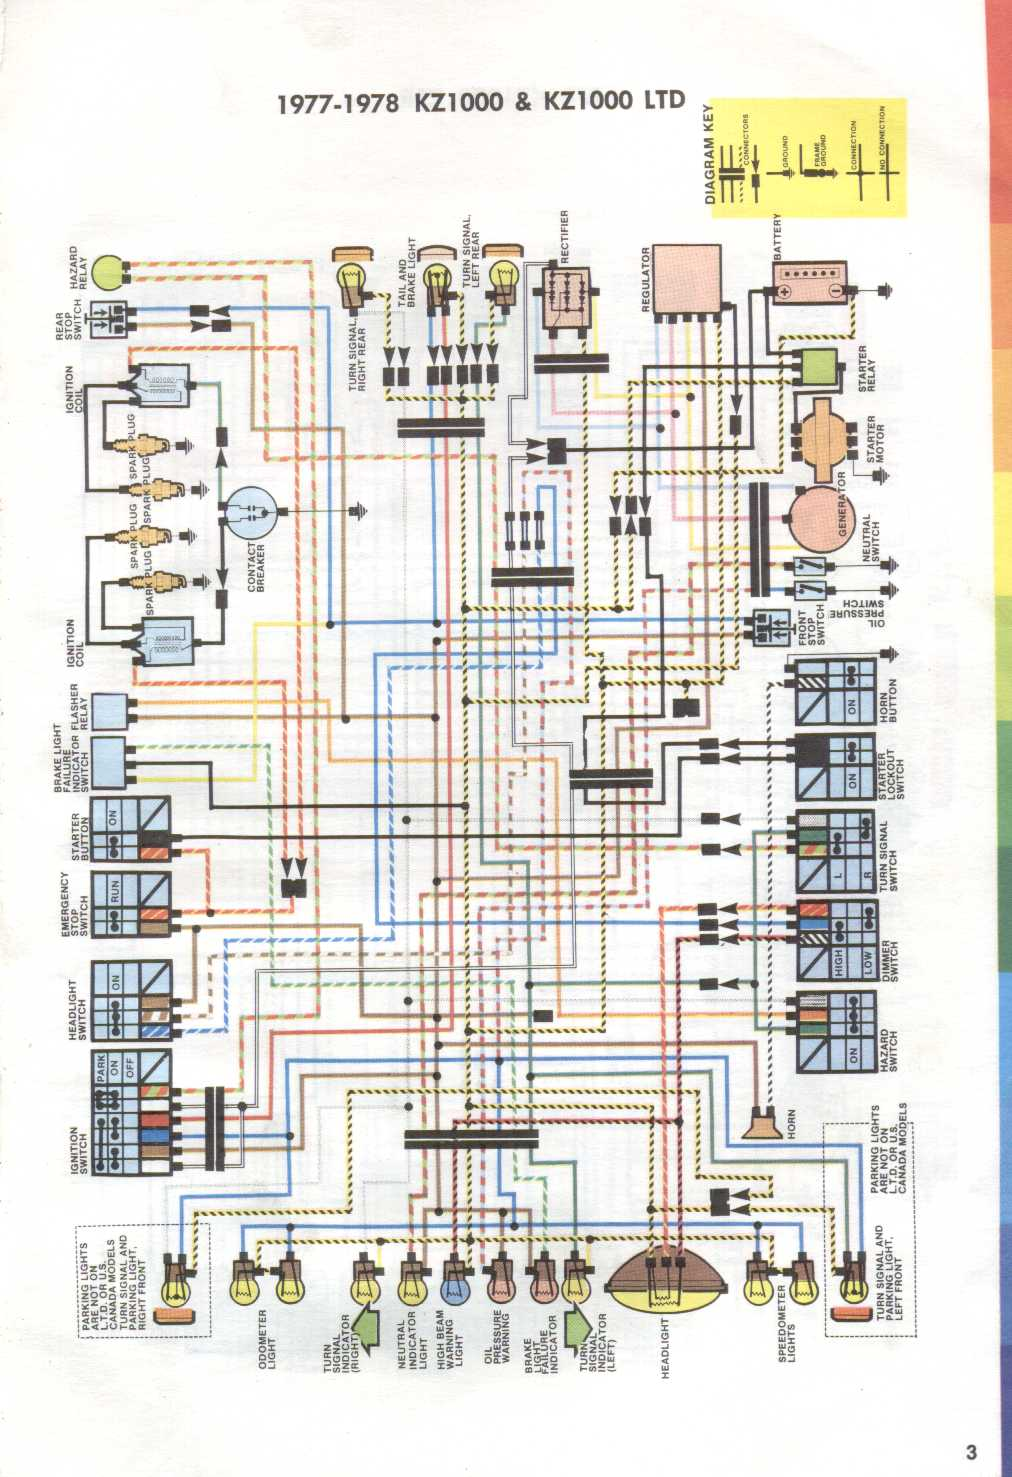 Kawasaki_KZ1000 LTD_Wiring_Diagram_1977 1978 motorcycle wiring diagrams kawasaki er 5 wiring diagram at edmiracle.co